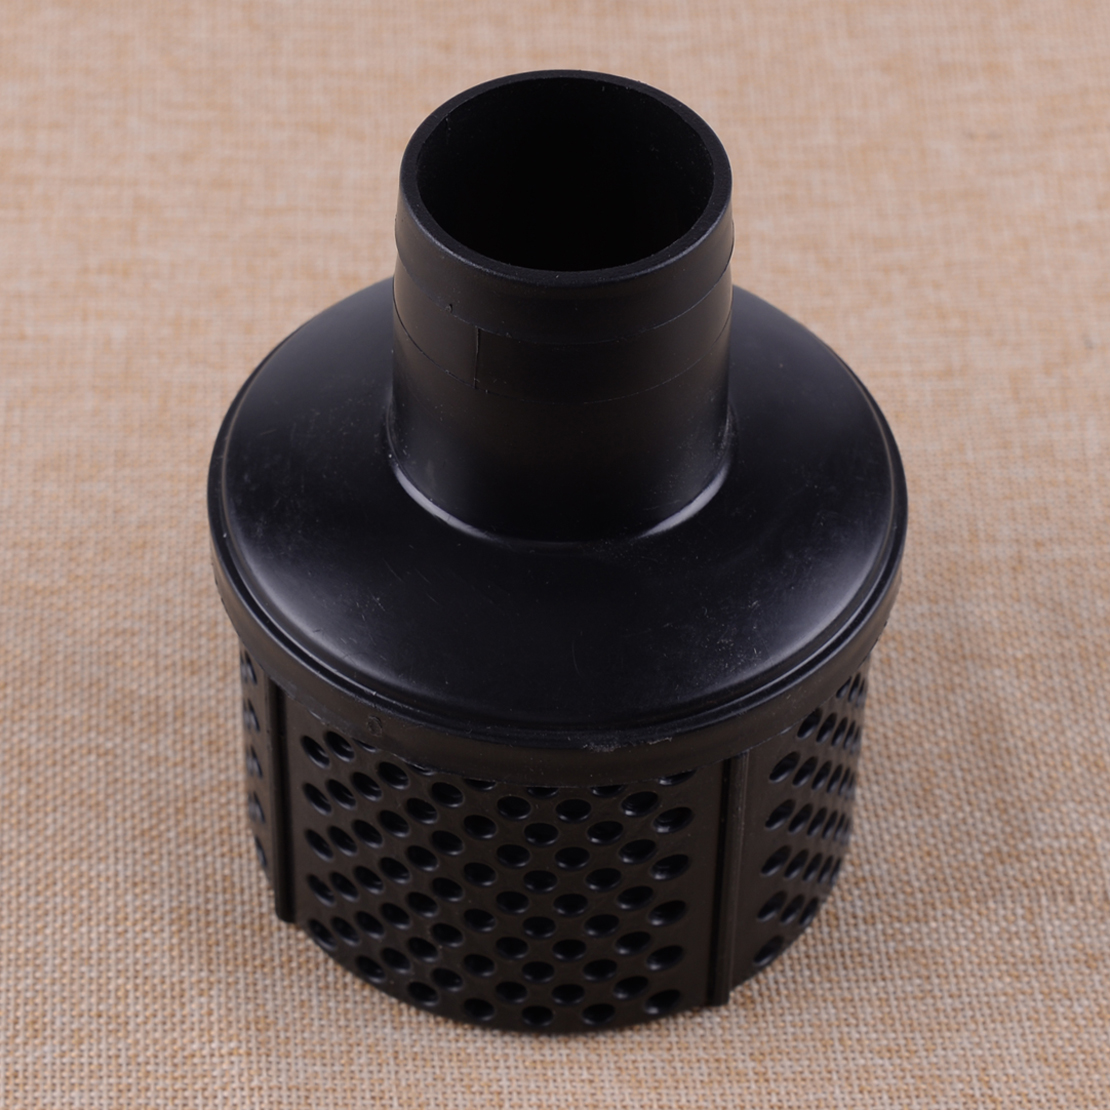 LETAOSK New Black ABS Dirty Water Drainage Sewage Pump Suction Hose Strainer Filters For 2